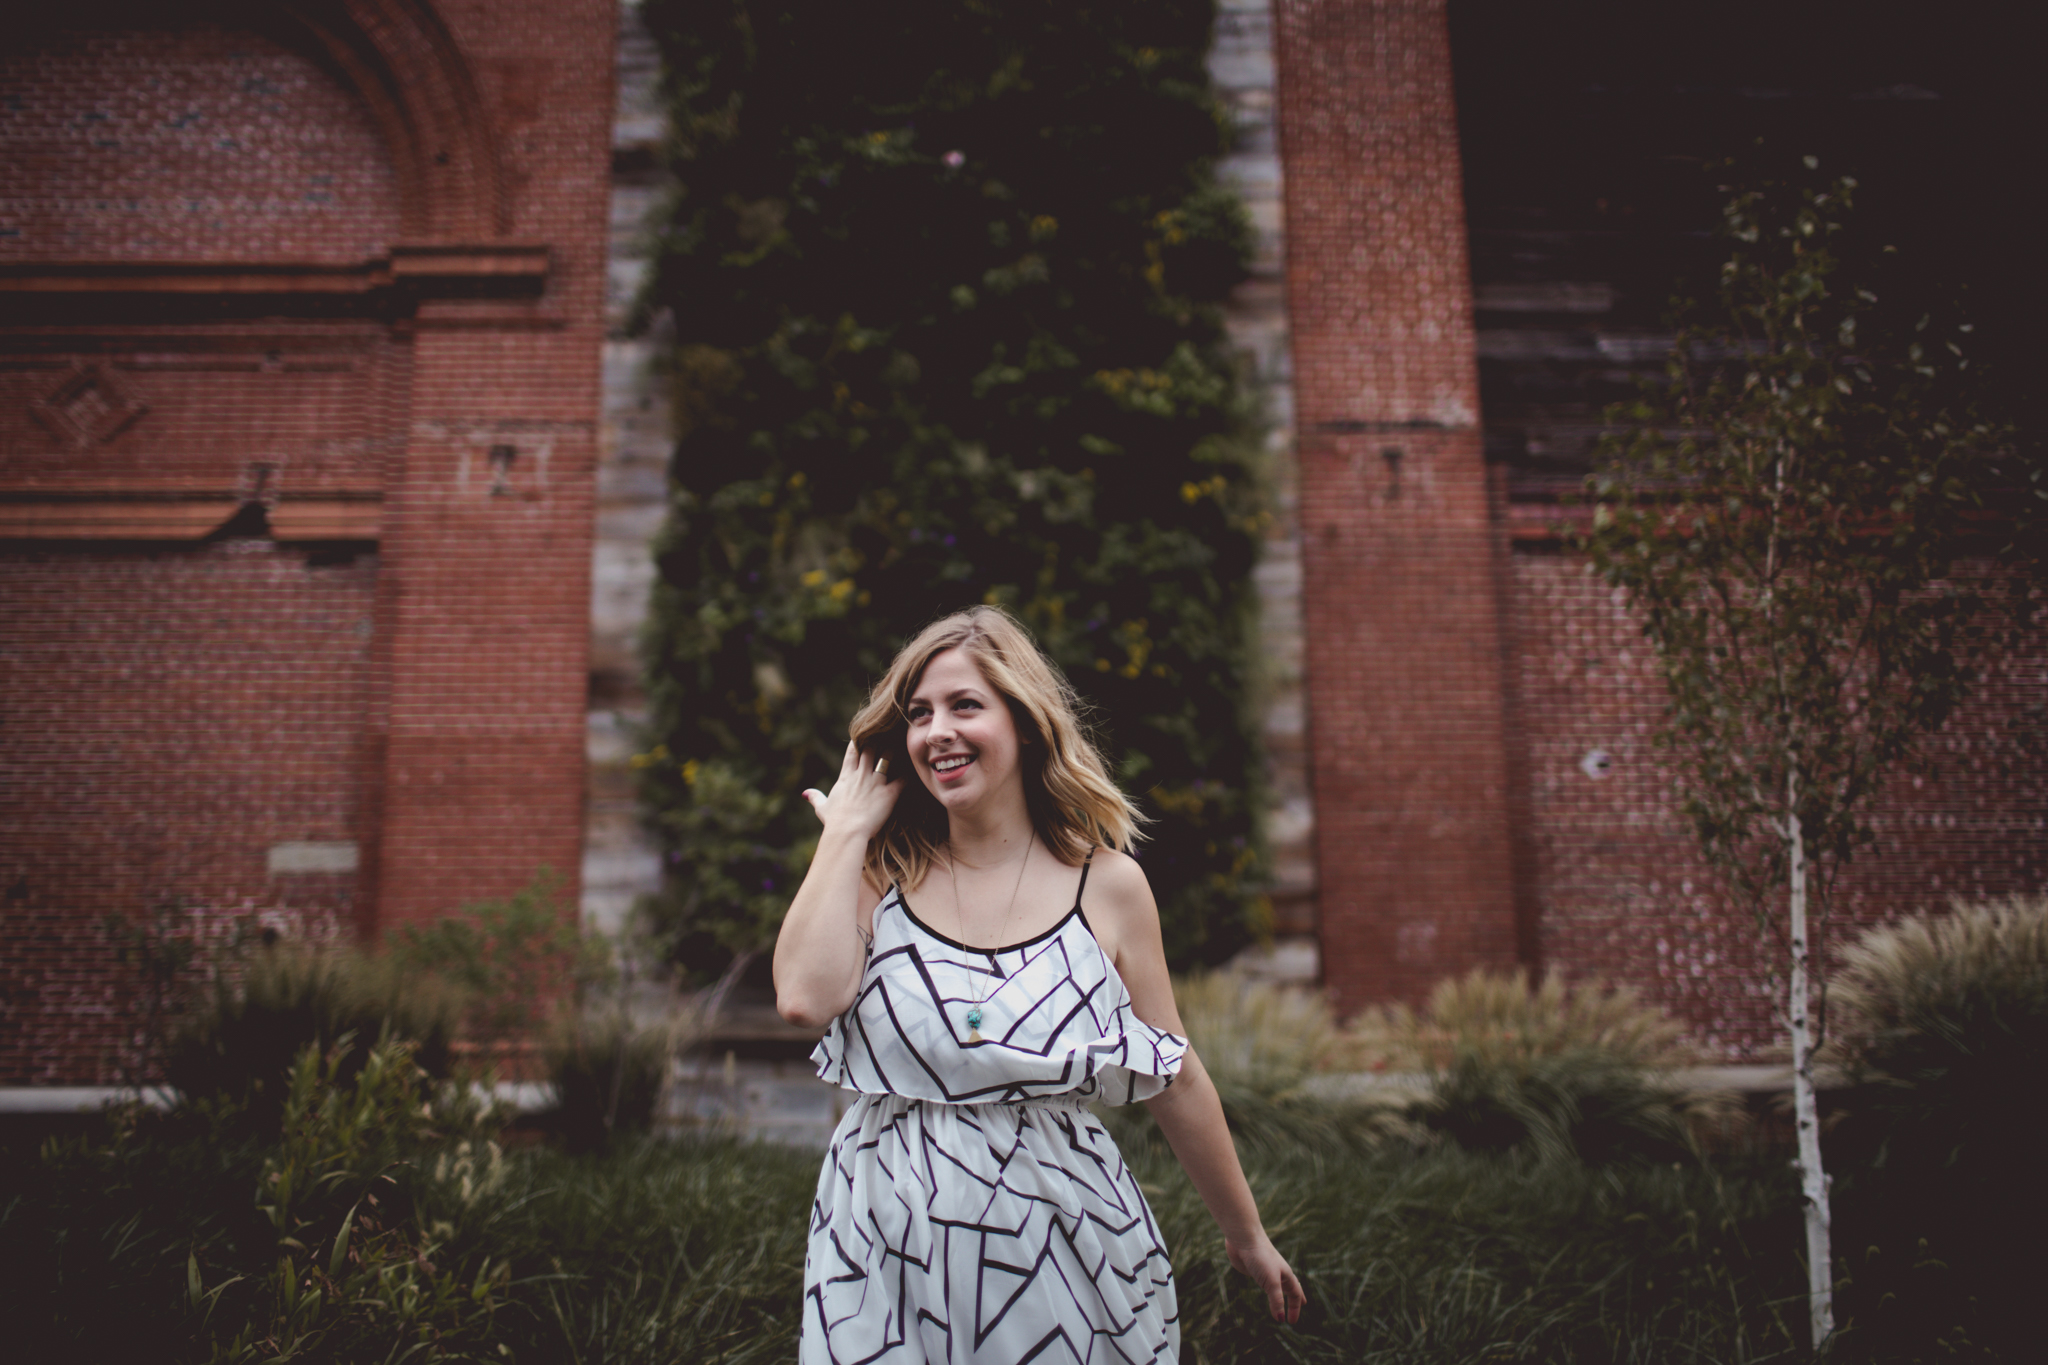 Cambria_Philly_Engagement_Photography-7670.jpg